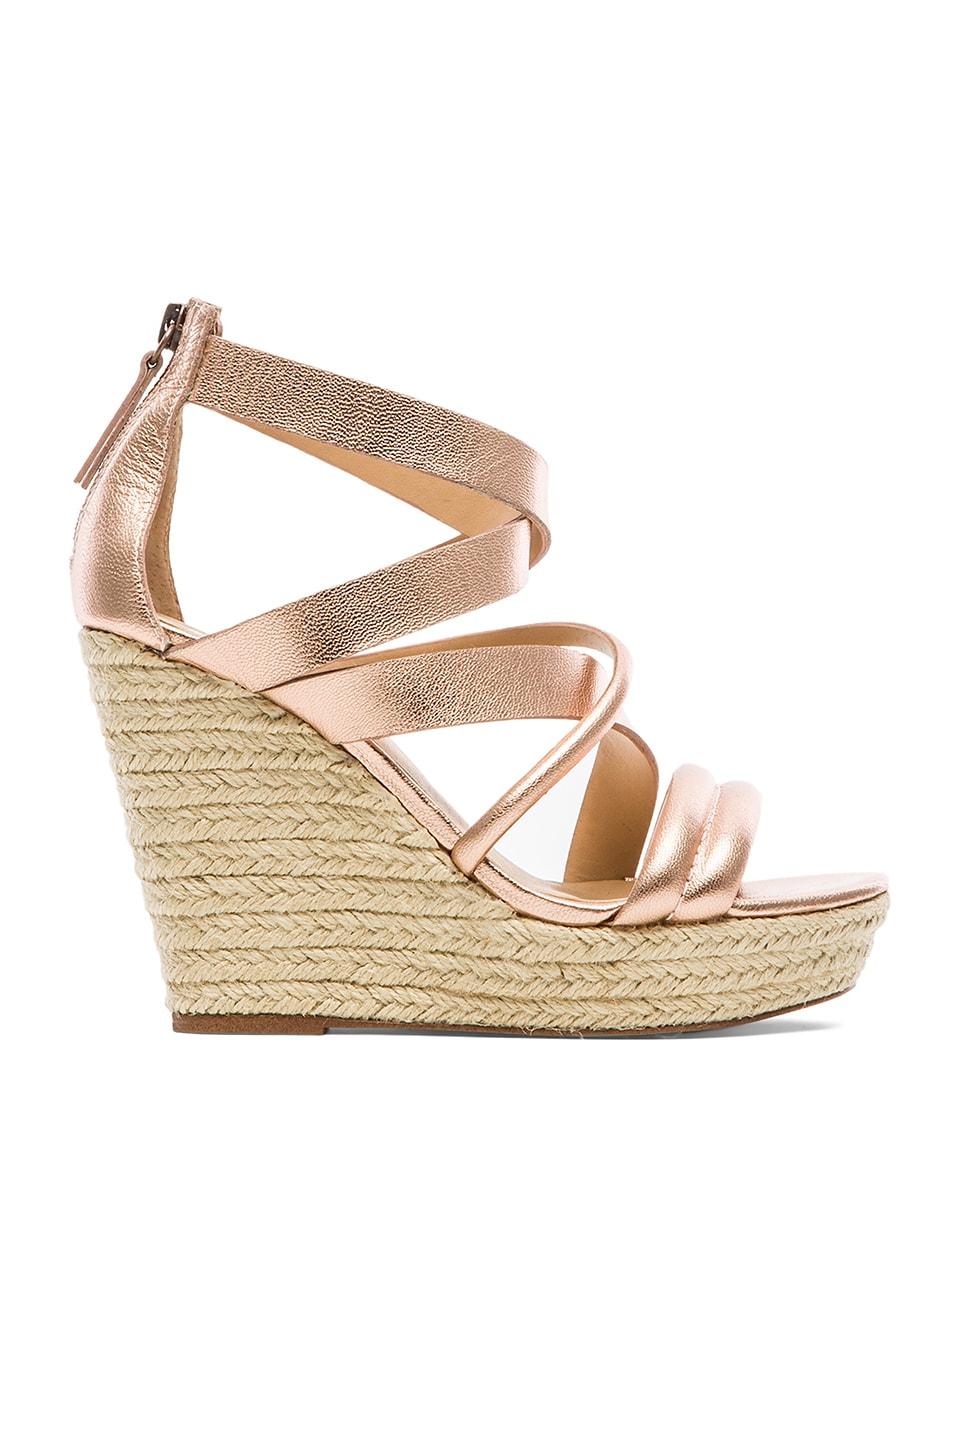 Joe's Jeans Robina Wedge in Copper